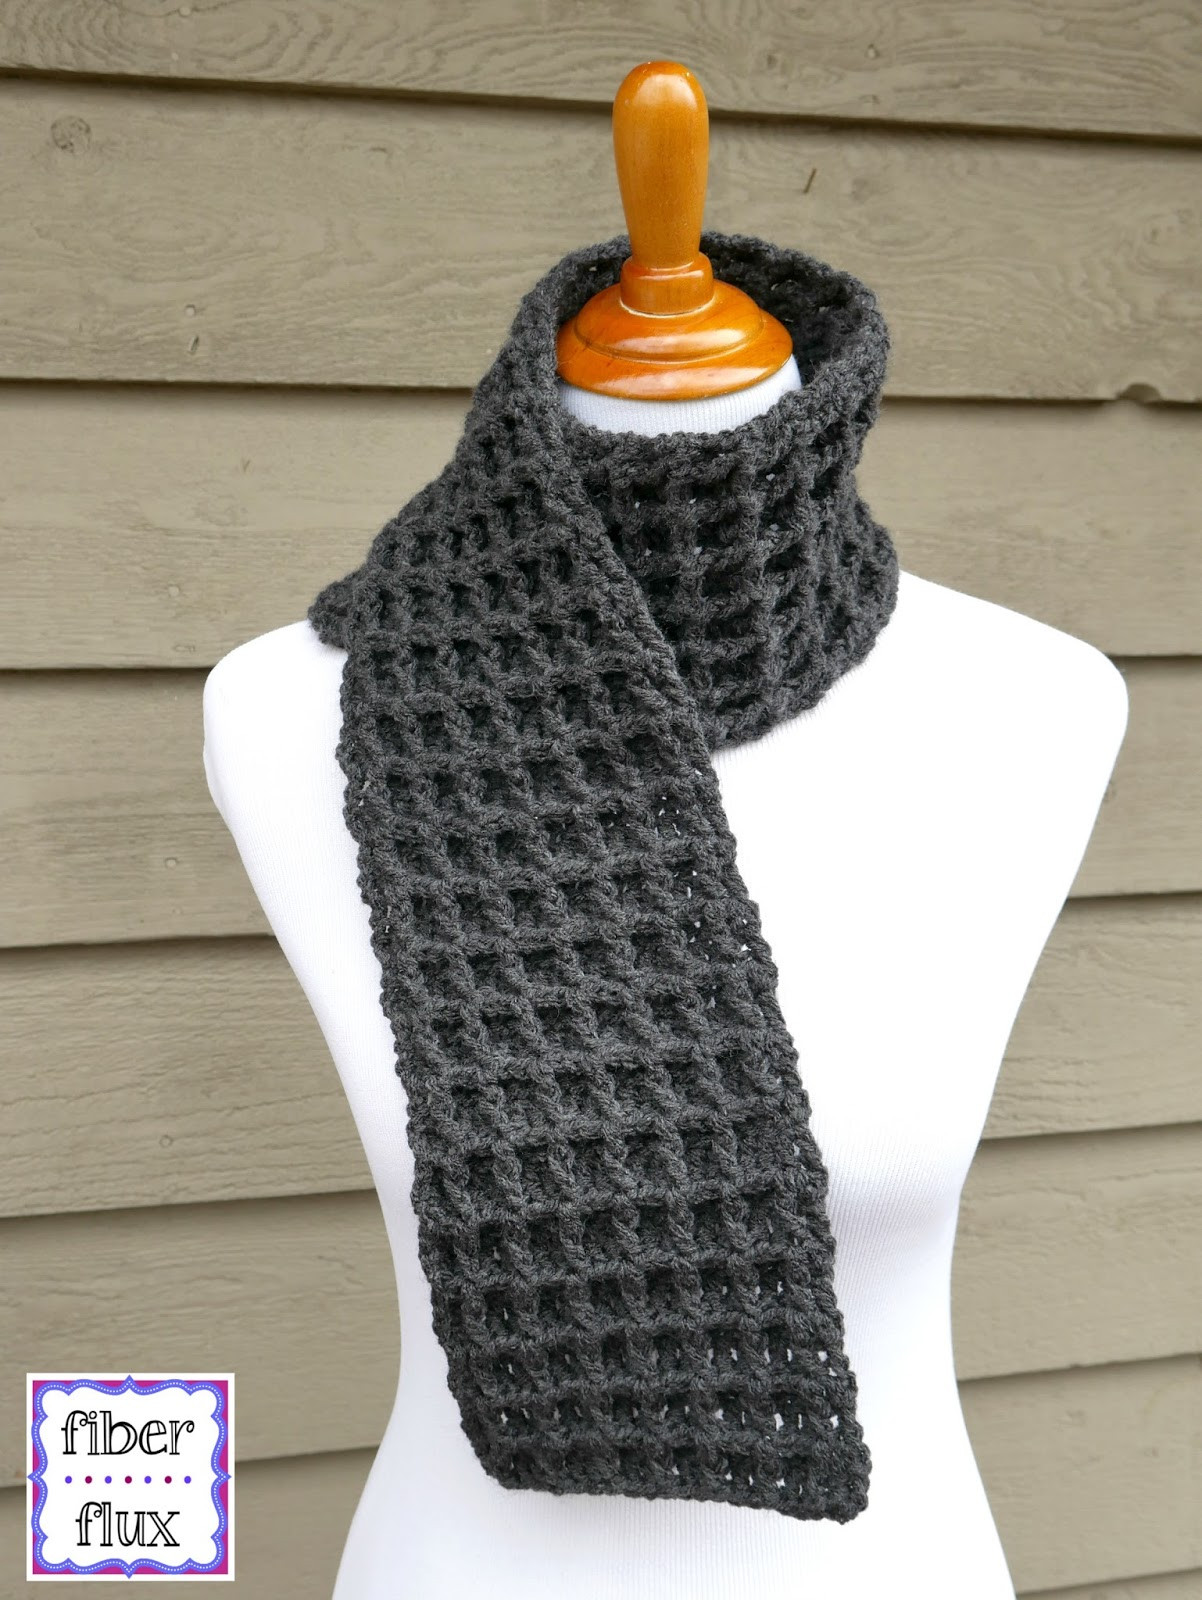 Crochet Scarf Patterns Awesome Fiber Flux Free Crochet Pattern Waffle Stitch Crochet Of Charming 49 Models Crochet Scarf Patterns